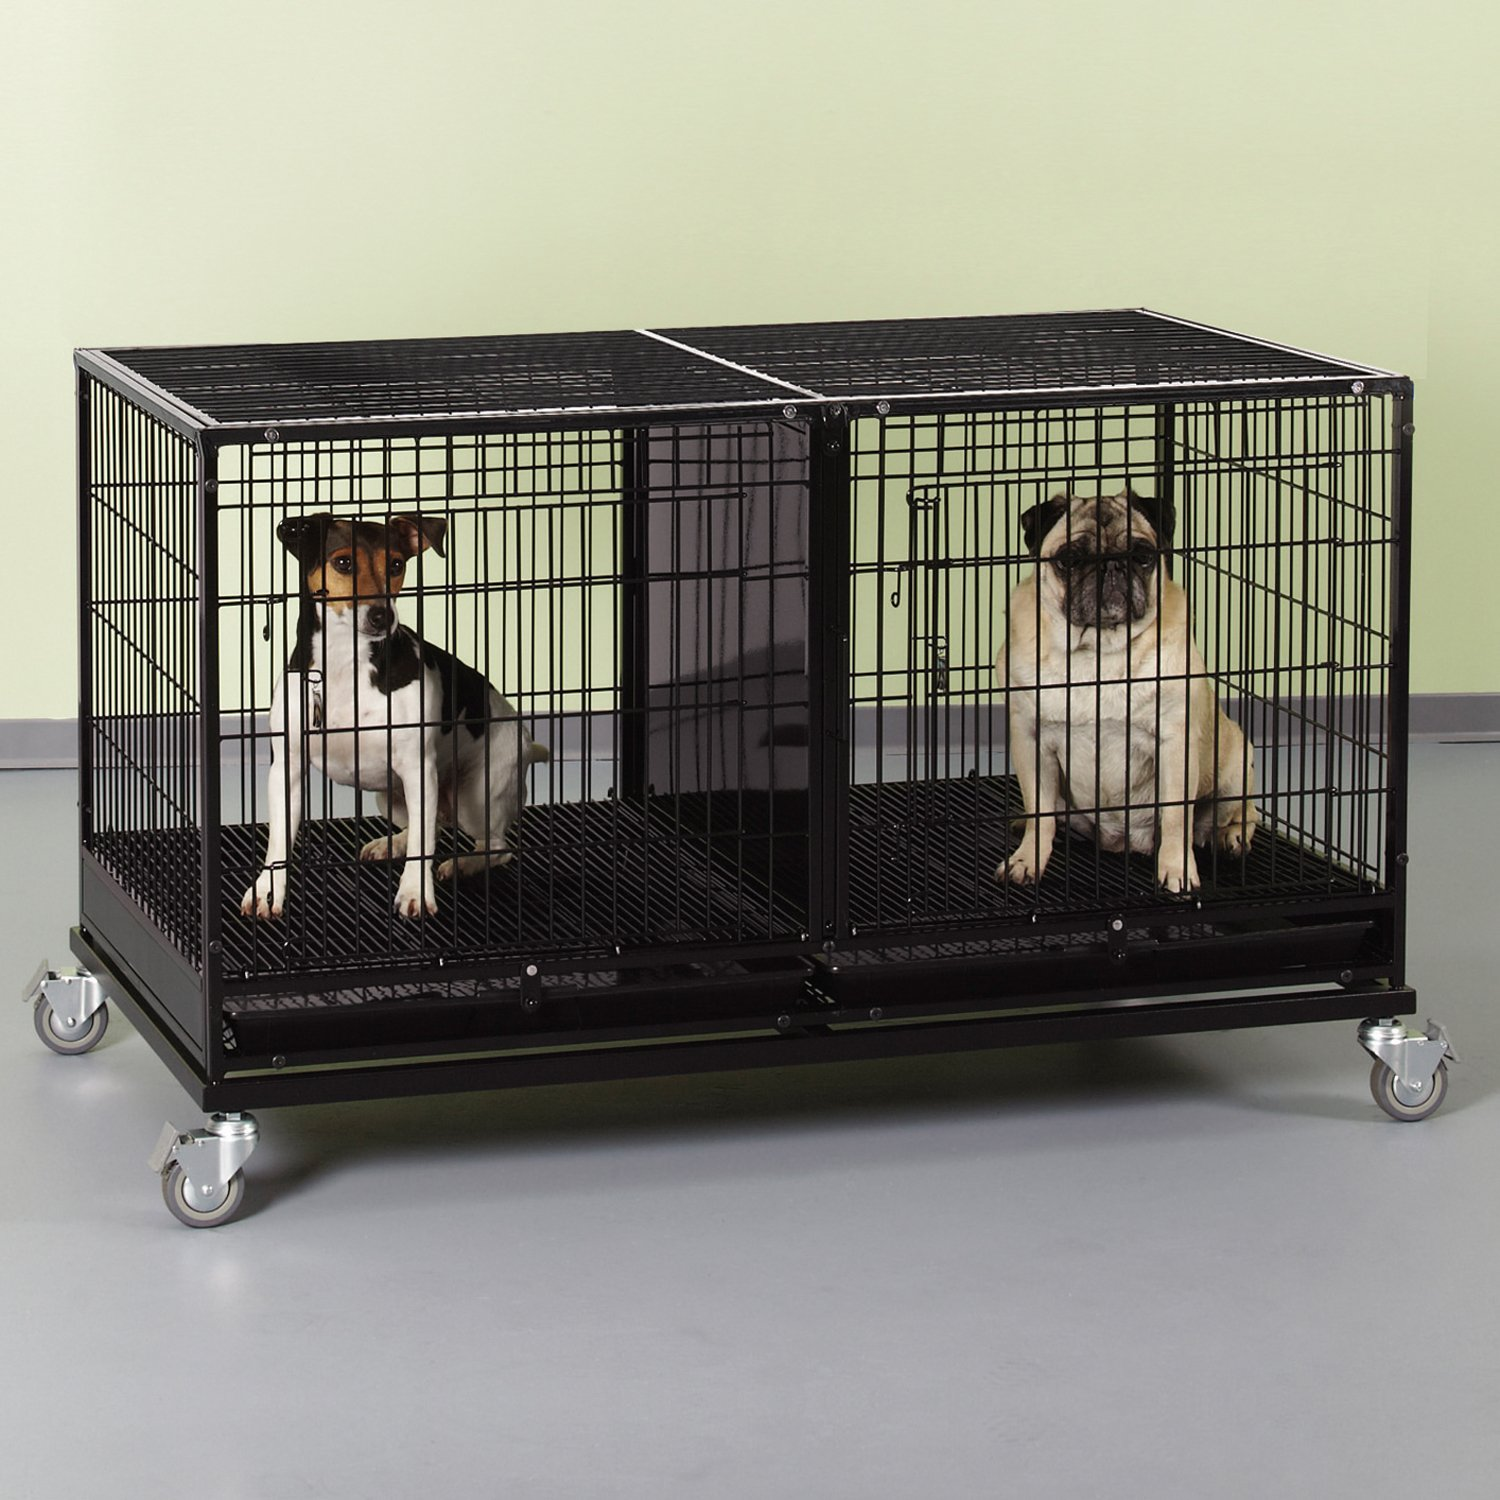 Amazon.com : ProSelect Steel Modular Cage with Plastic Tray, Black ...